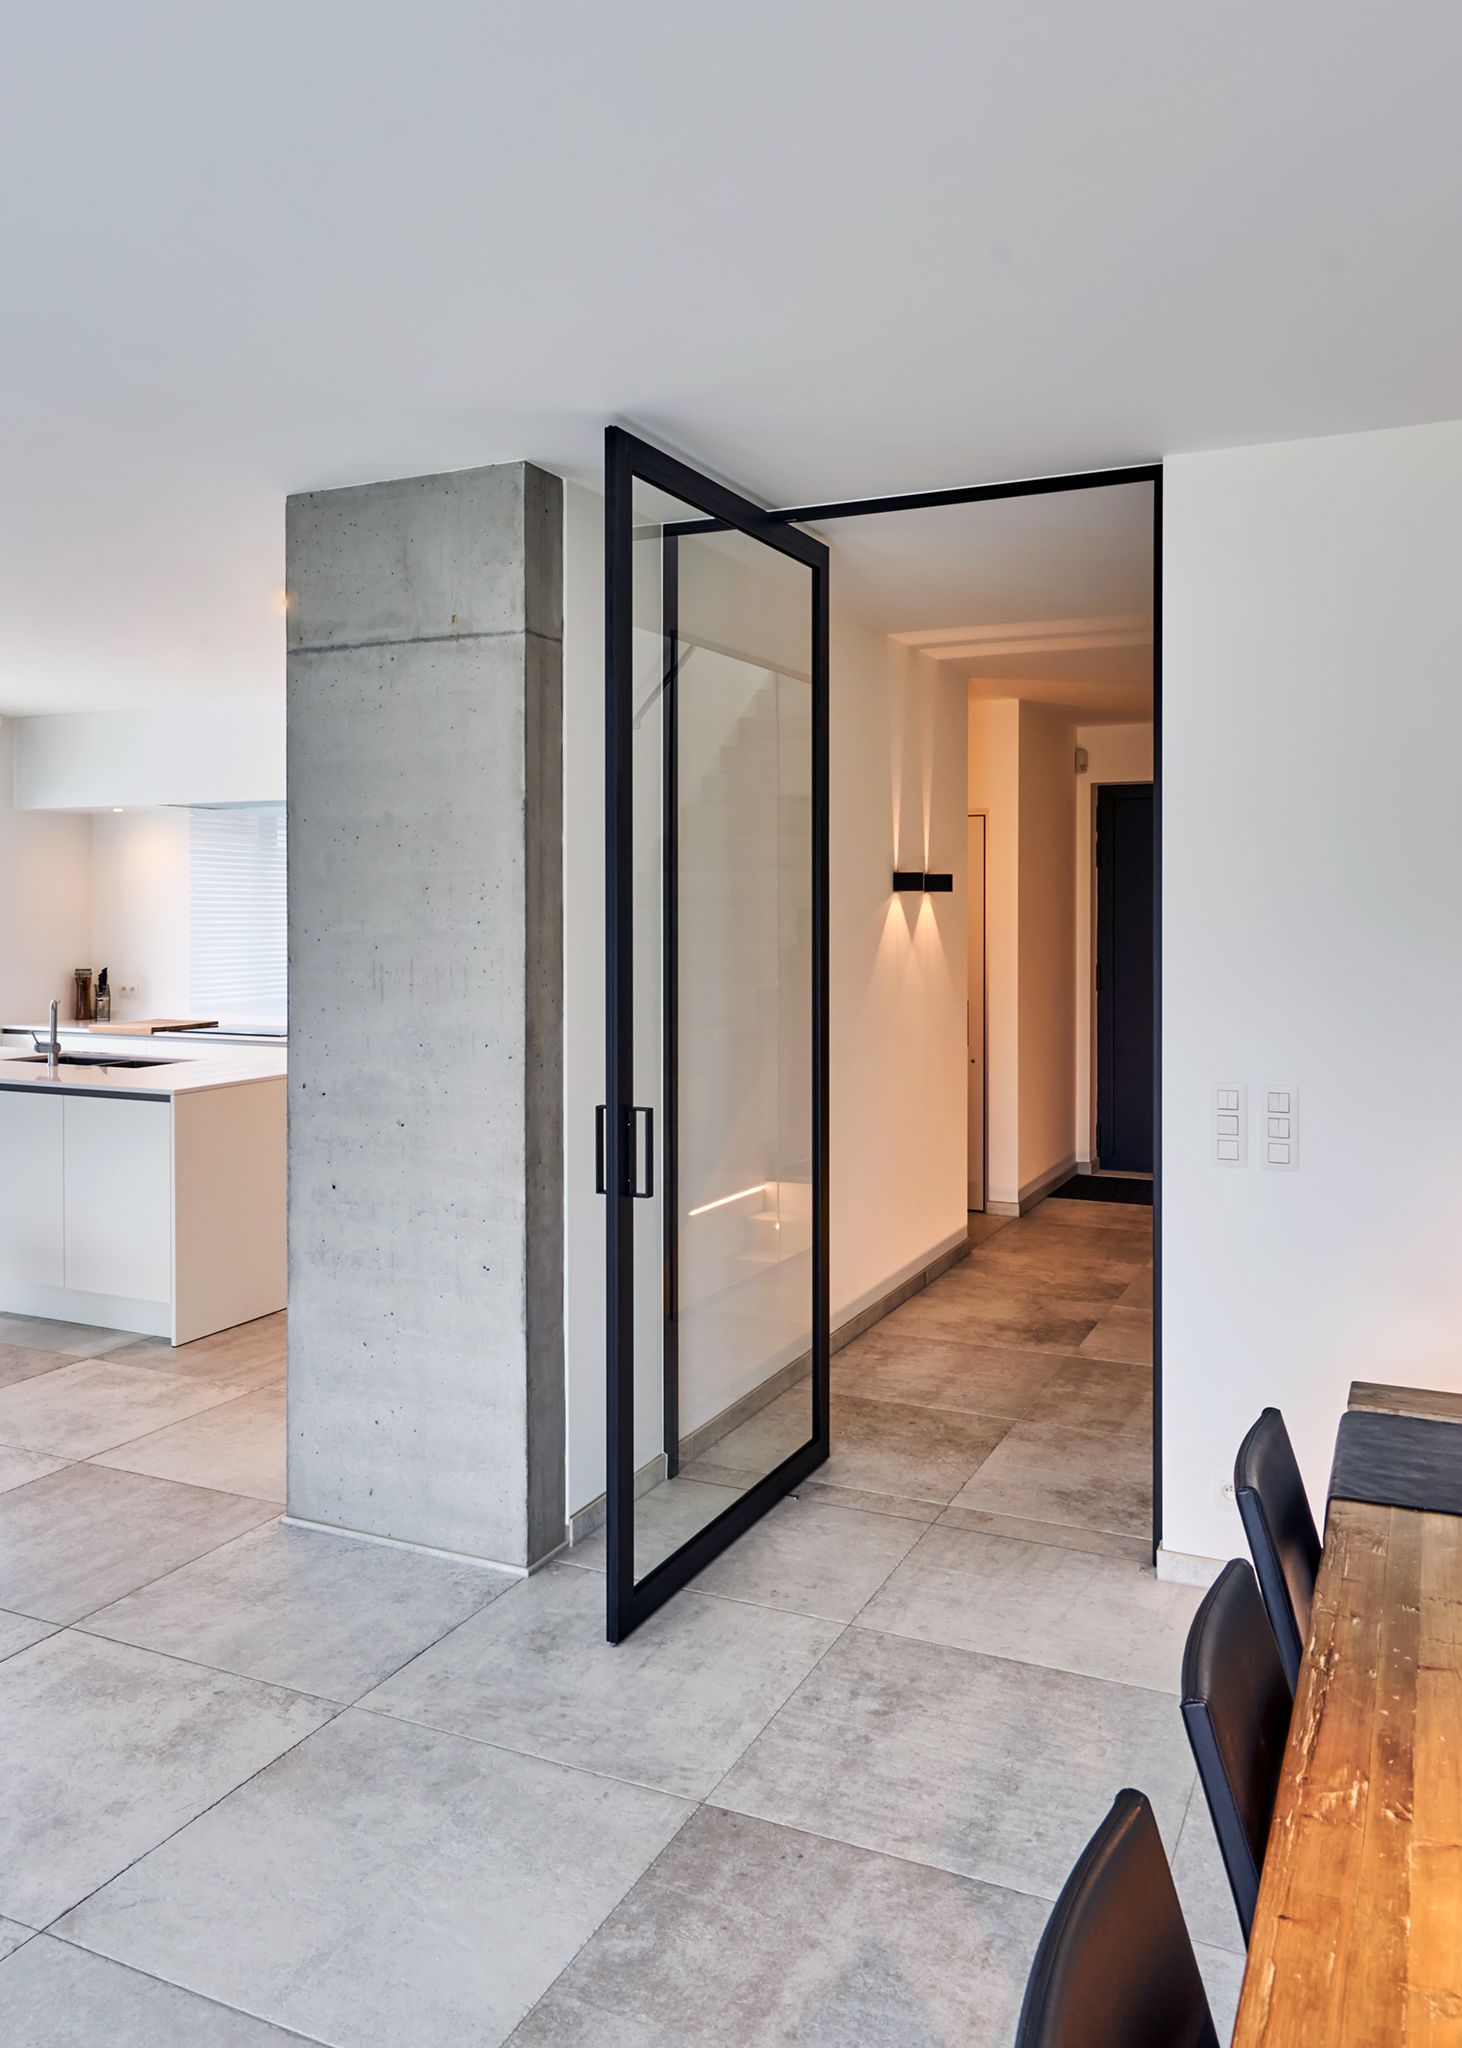 1f7a32e8eda Modern glass pivoting door with a black aluminium frame. Custom-made pivot  door by Anyway Doors with offset axis pivot hinges without built-in parts  to ...